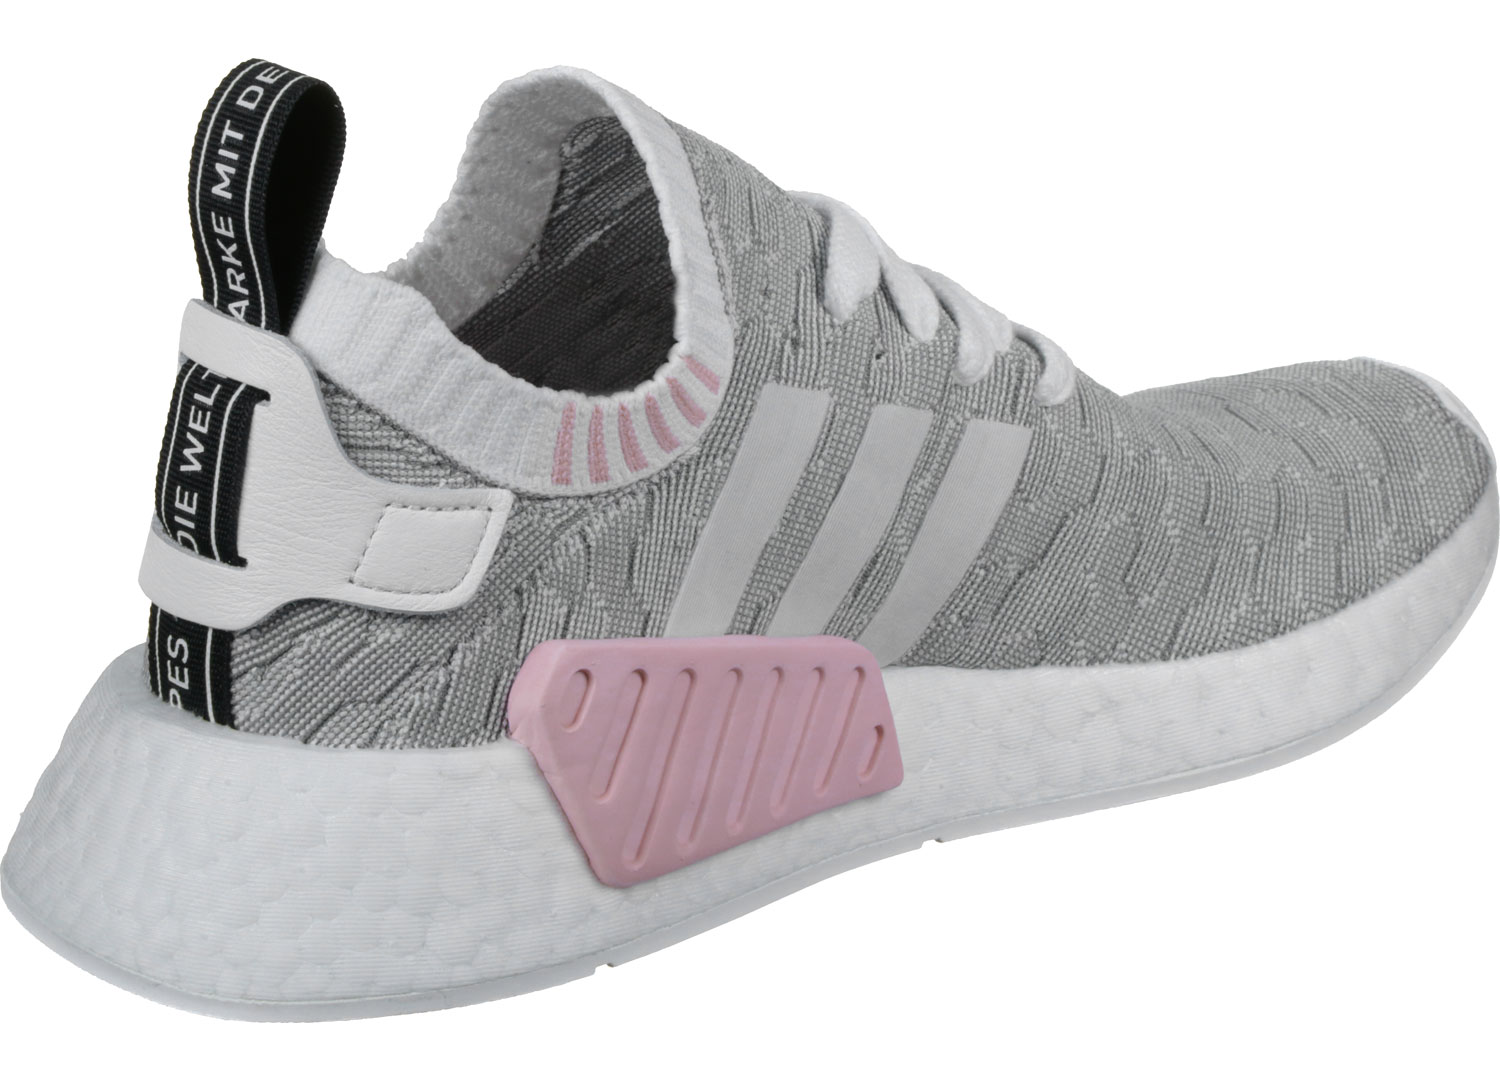 adidas NMD R2 PK W - Sneakers Low at